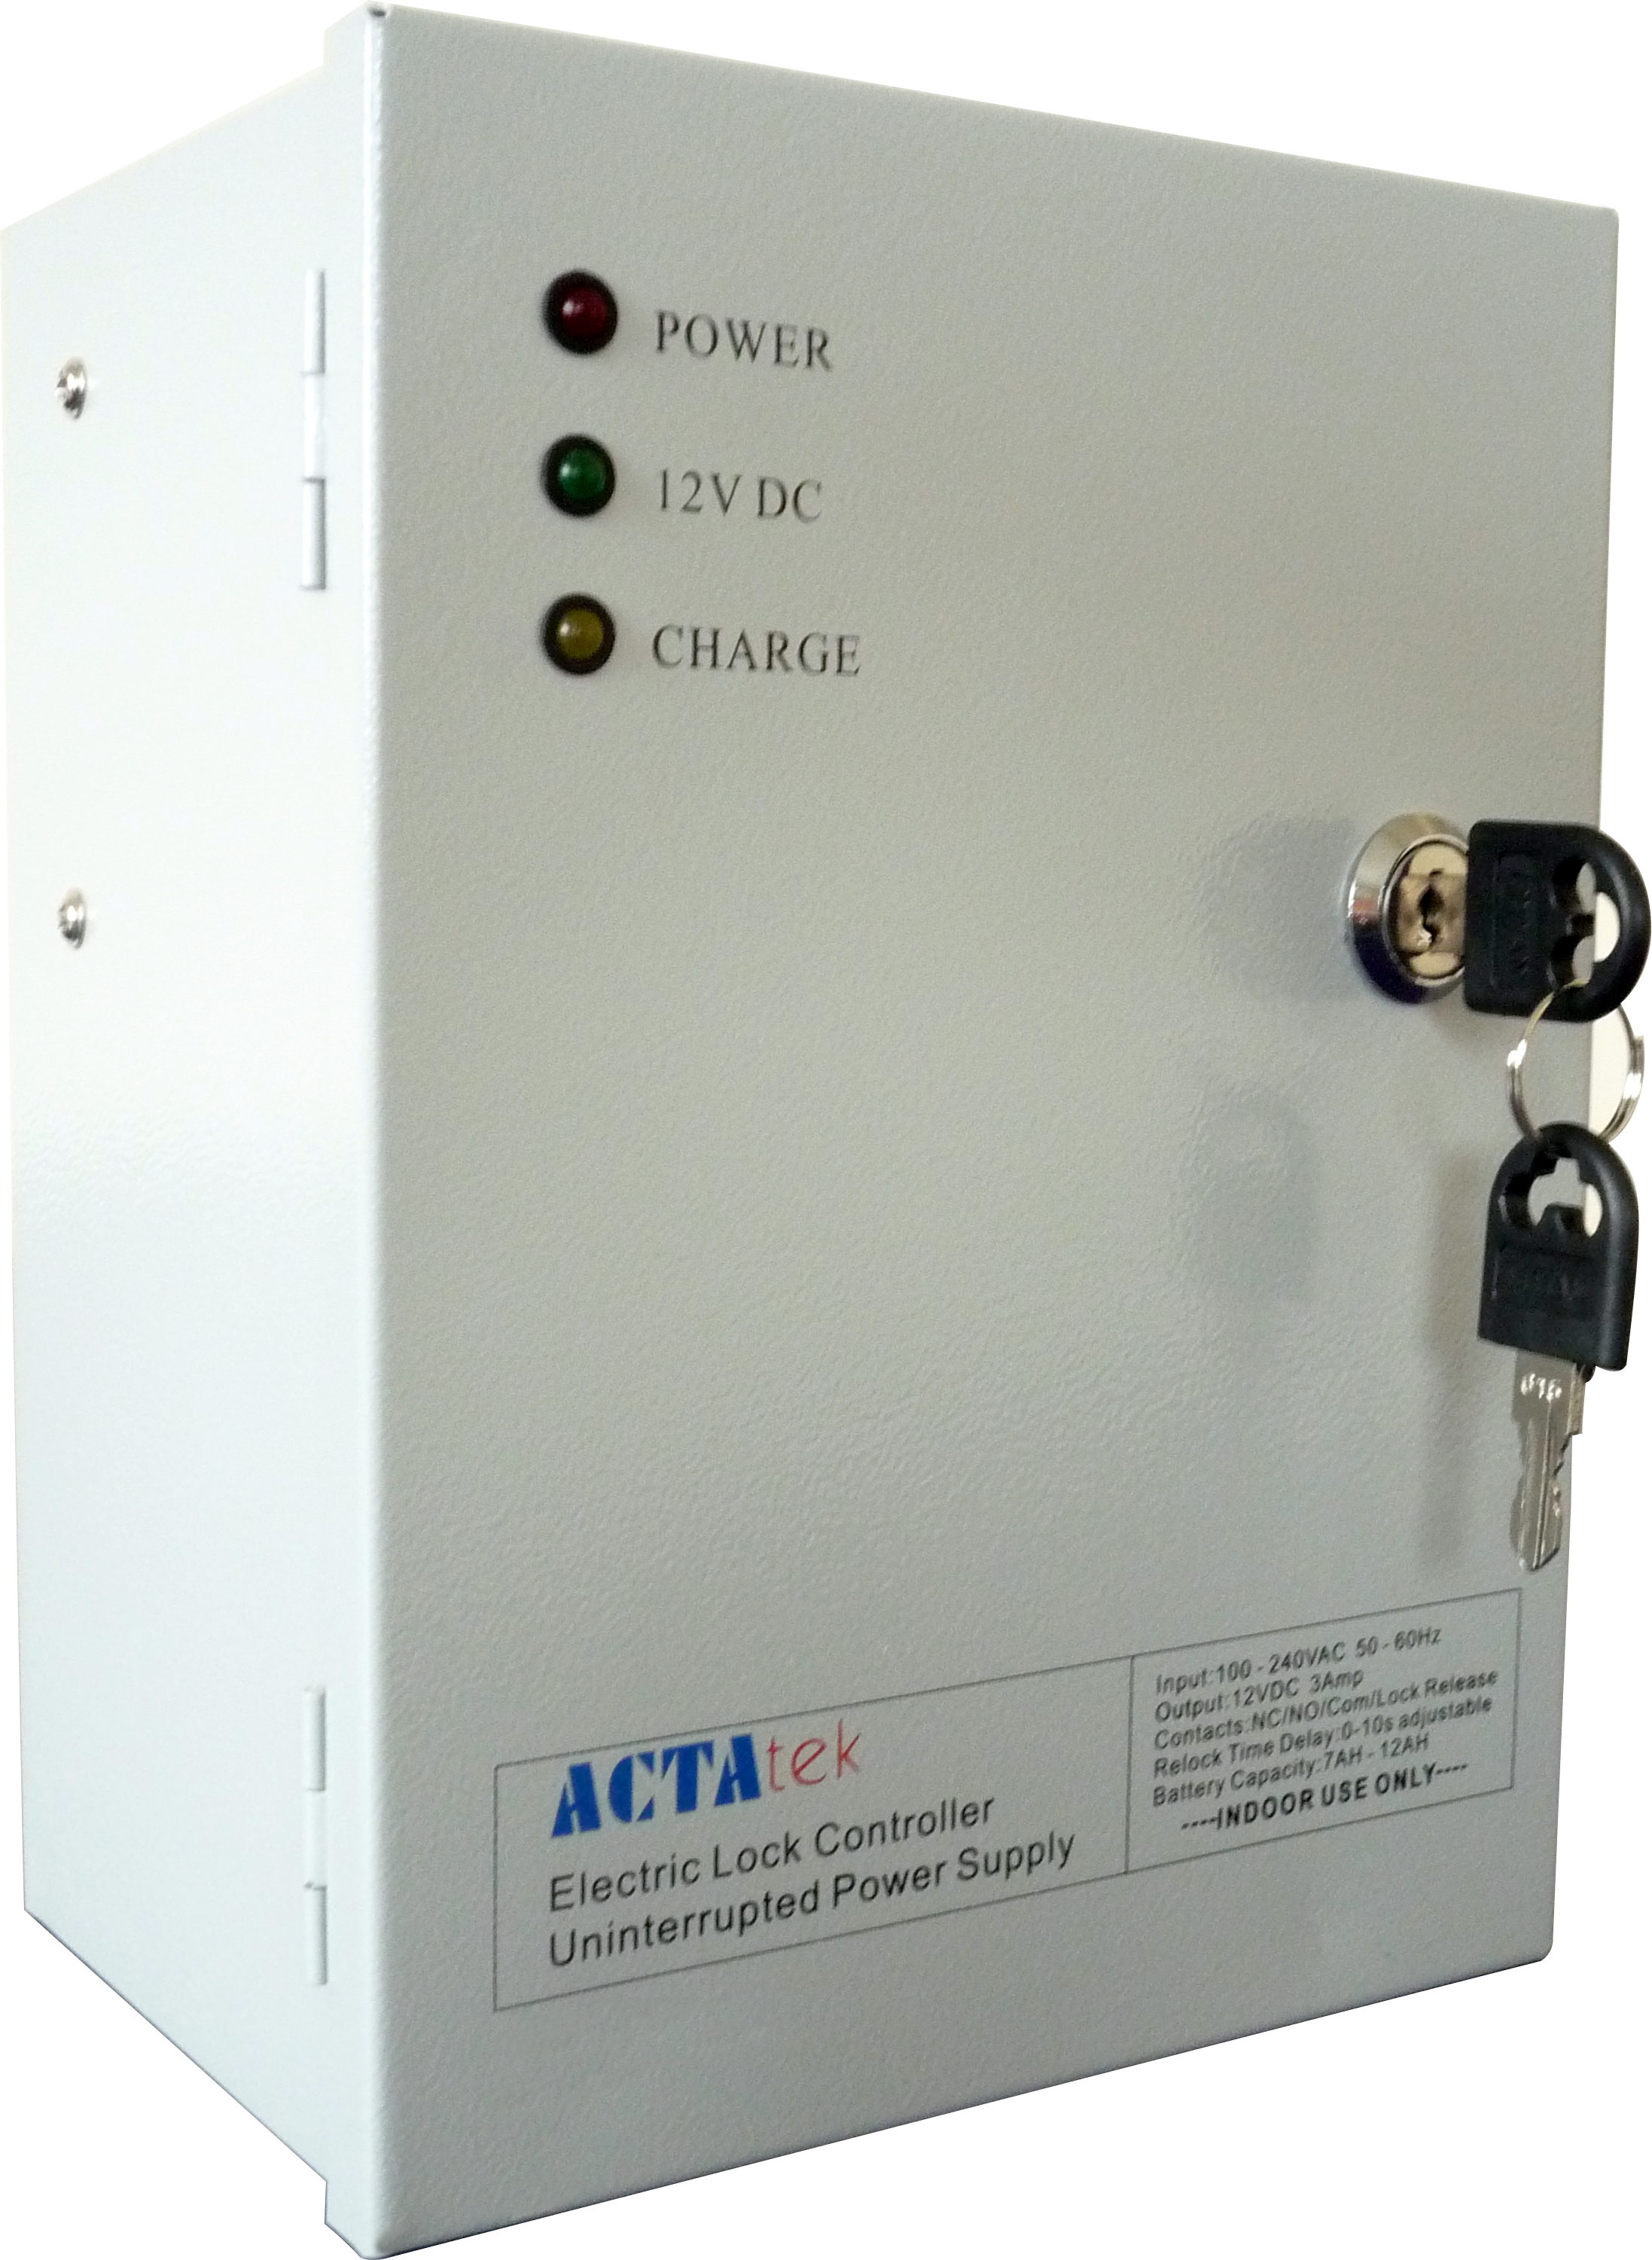 UPS- Uninterupted Power Supply